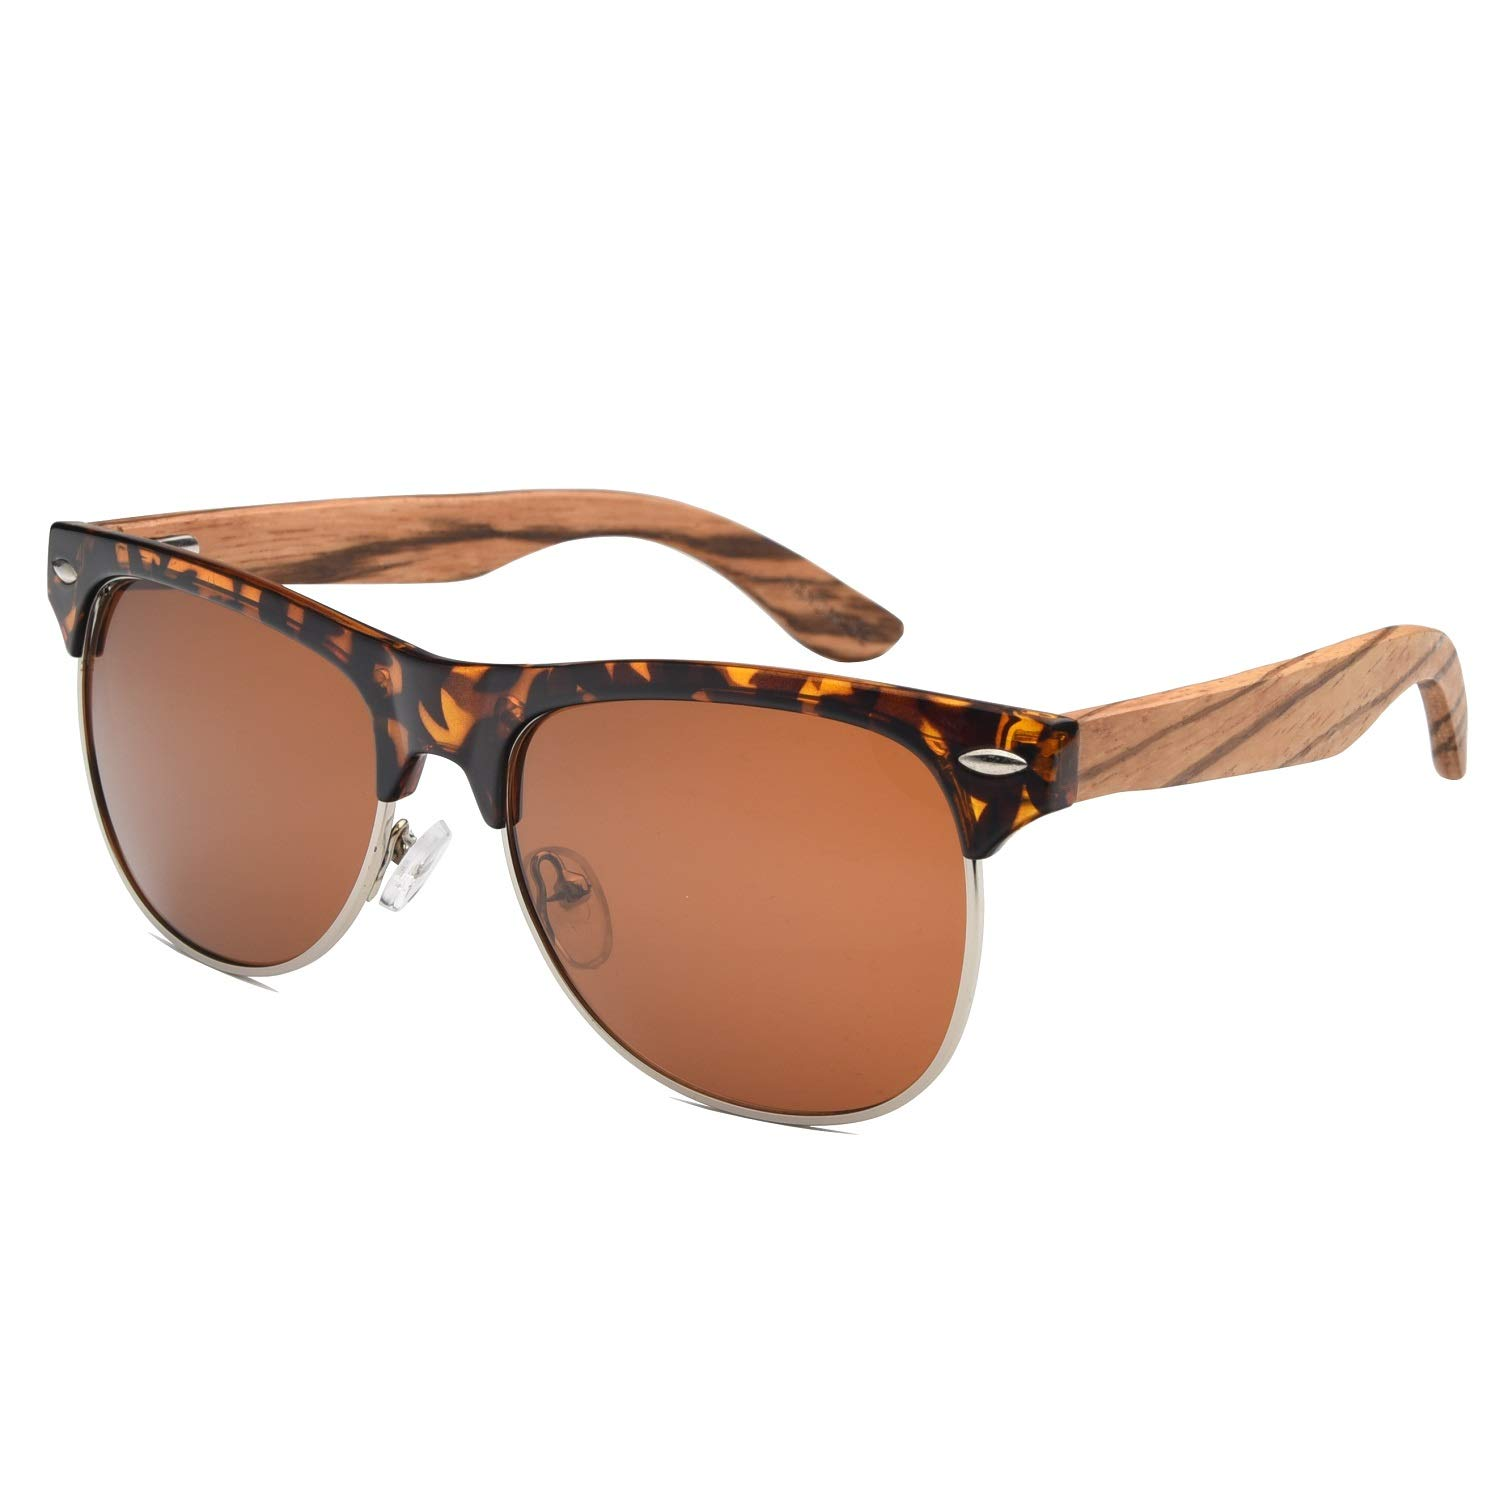 d23191fe65f Amazon.com  Ablibi Polarized Semi Rimless Wooden Bamboo Sunglasses for Mens  Womens Best Gifts  Clothing